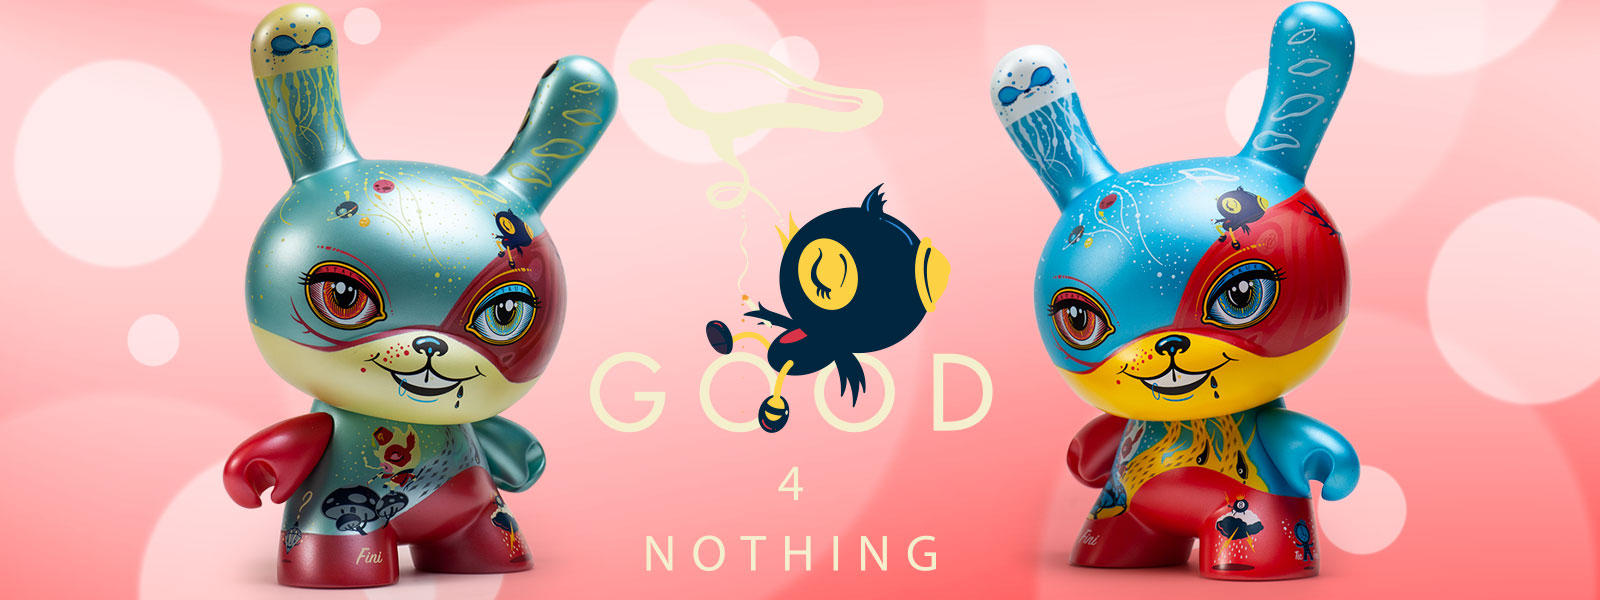 "Good 4 Nothing 8"" Dunnys by 64 Colors - Artist Laura Colors x Kidrobot"